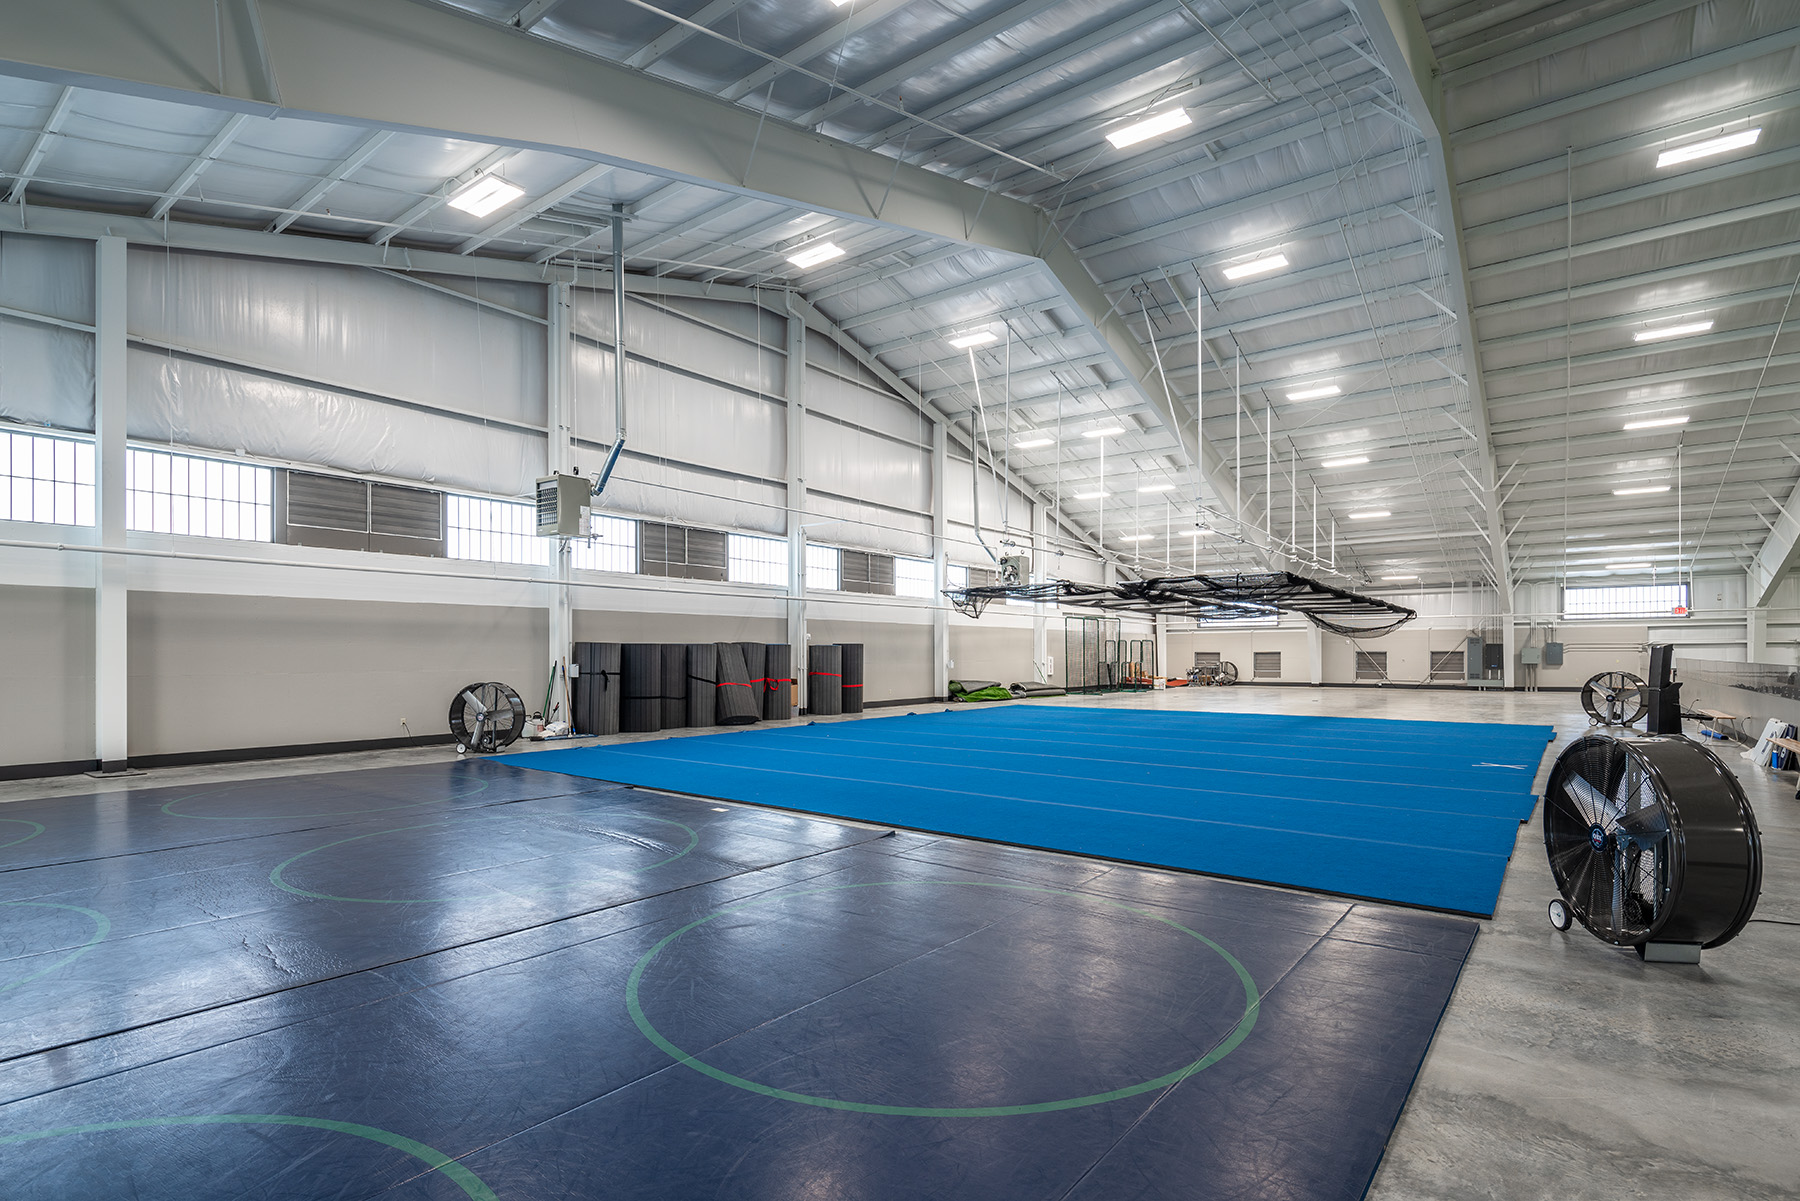 Little Rock Christian Academy Warrior Athletics – Wrestling and Cheer Dance Practice Area